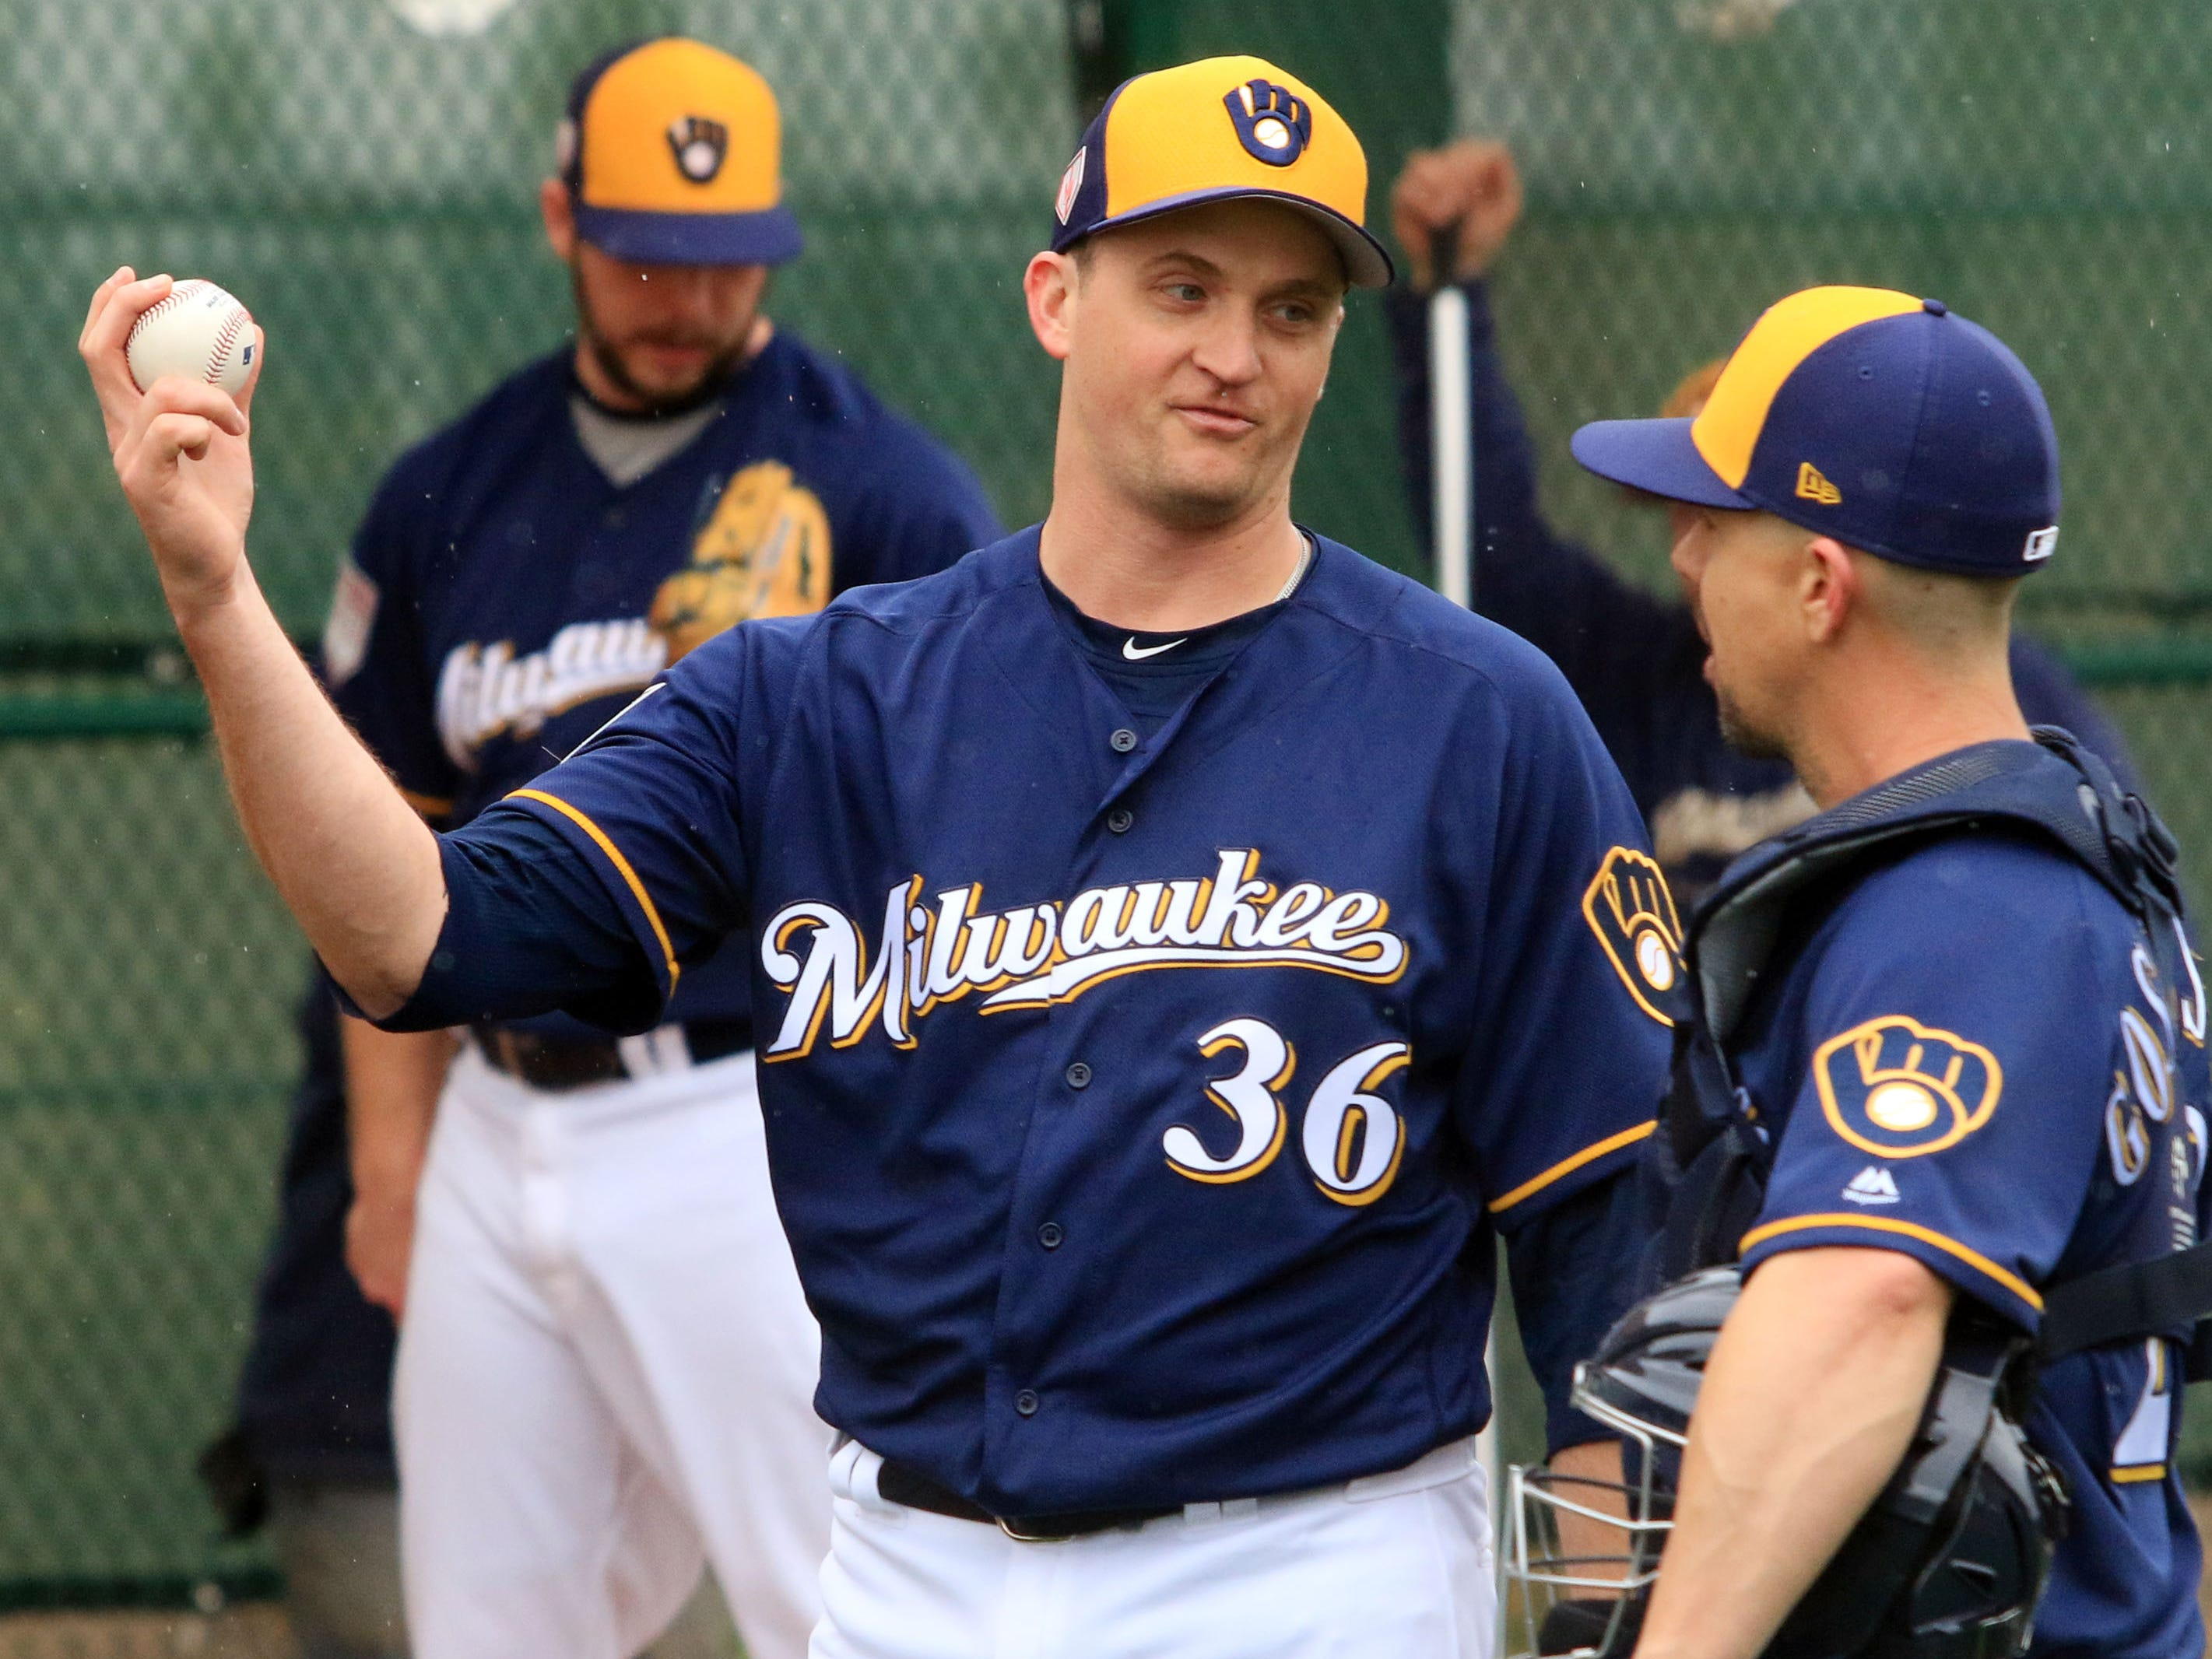 Brewers relief pitcher Jake Petricka  talks with catcher Tuffy Gosewisch, a non-roster invitee,  following a bullpen session on Thursday.